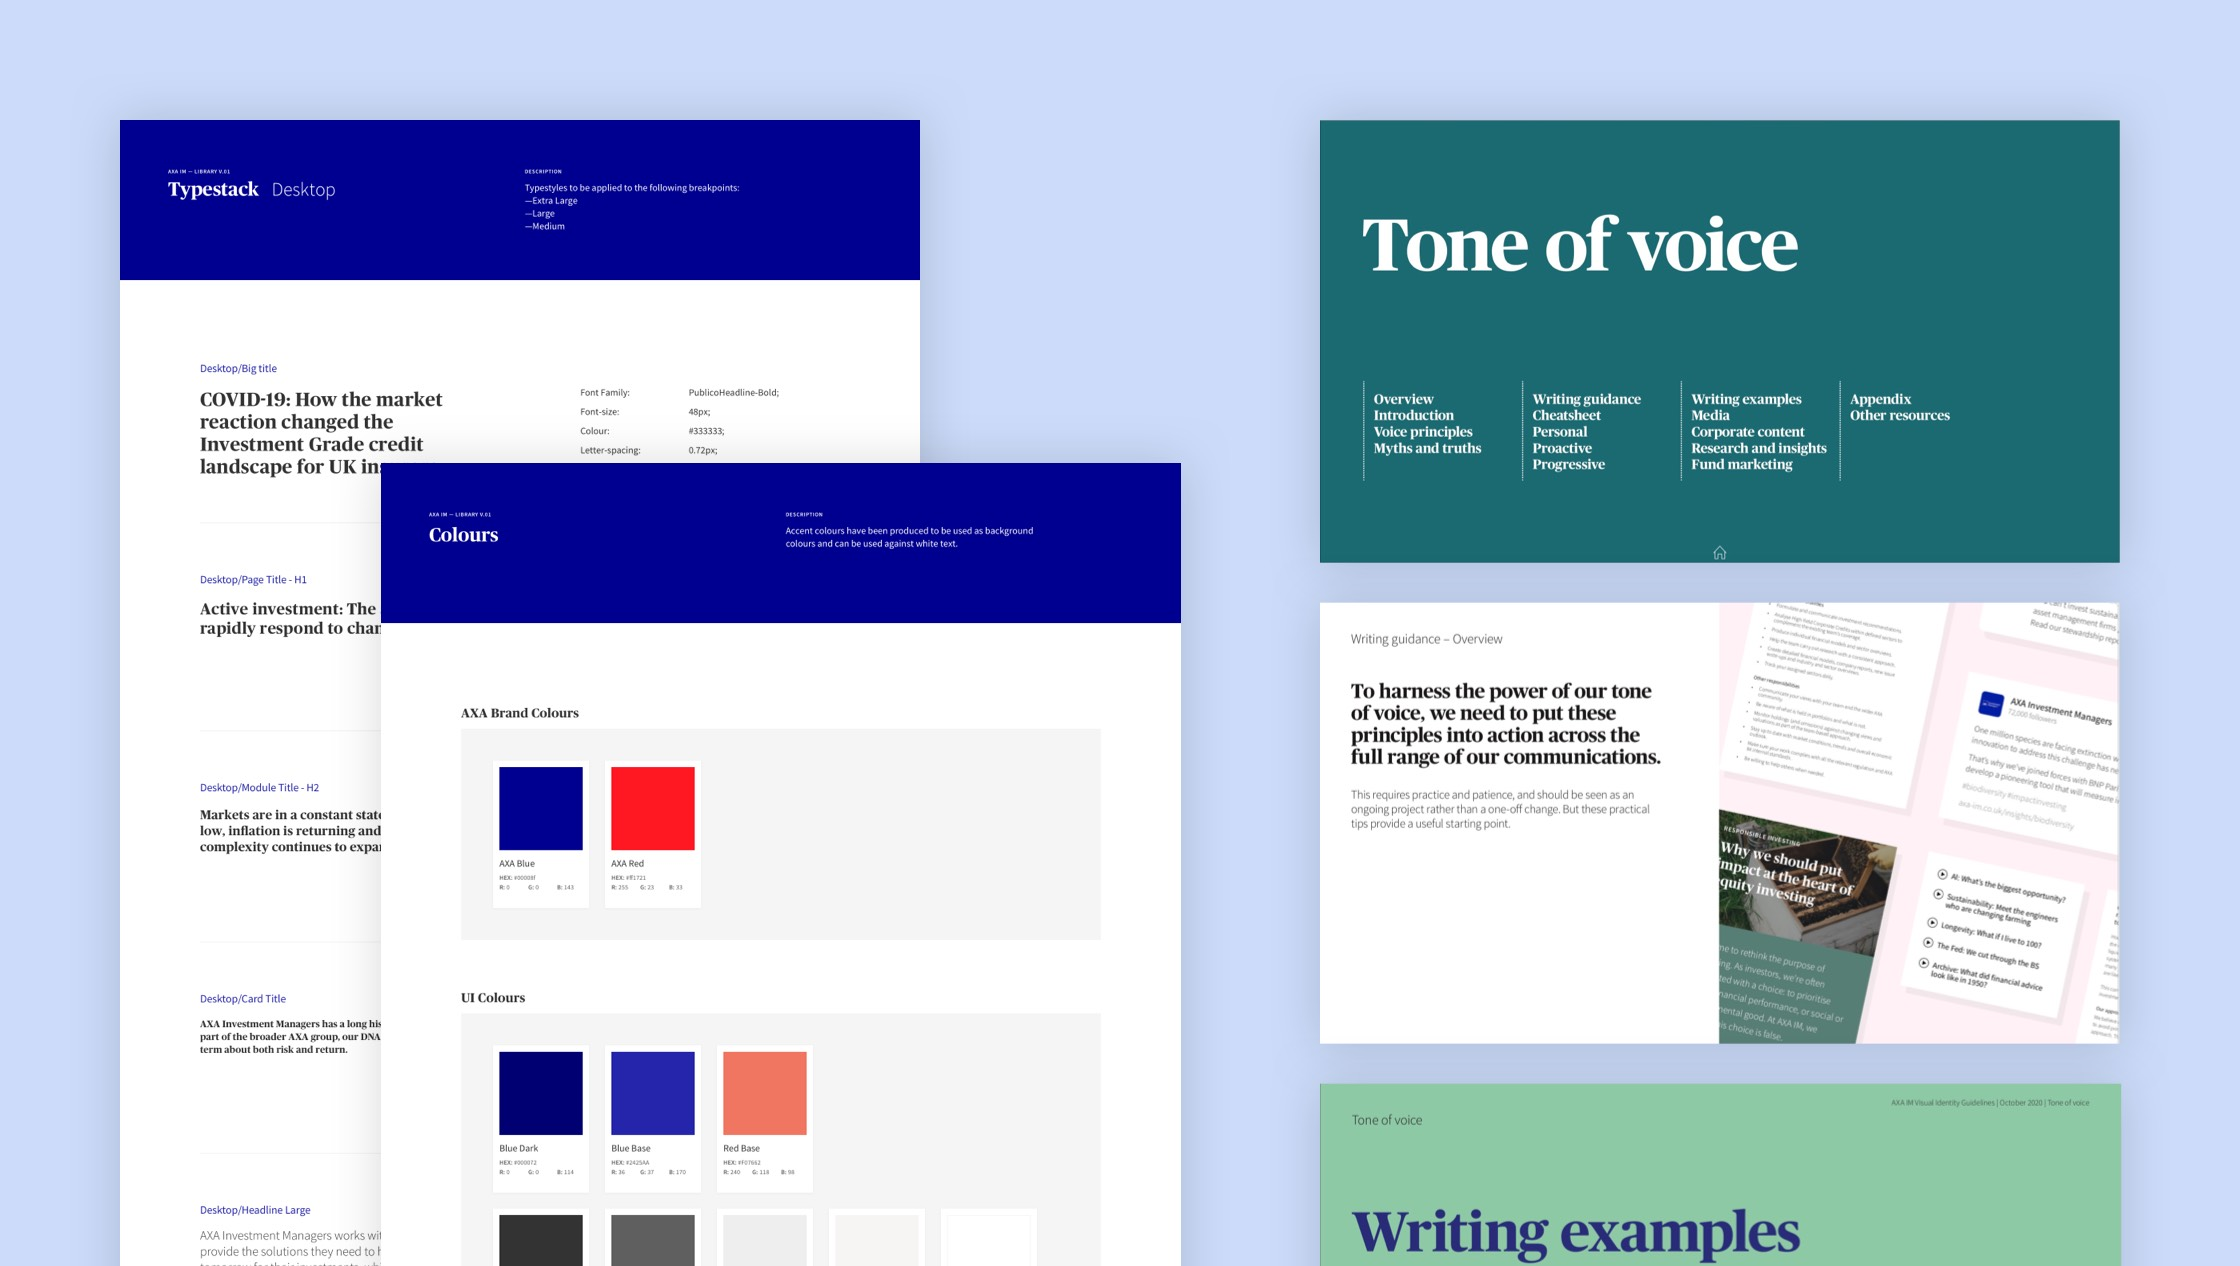 A group of screen shots showing the design guidelines and ton of voice guidelines for the AXA IM web experience.